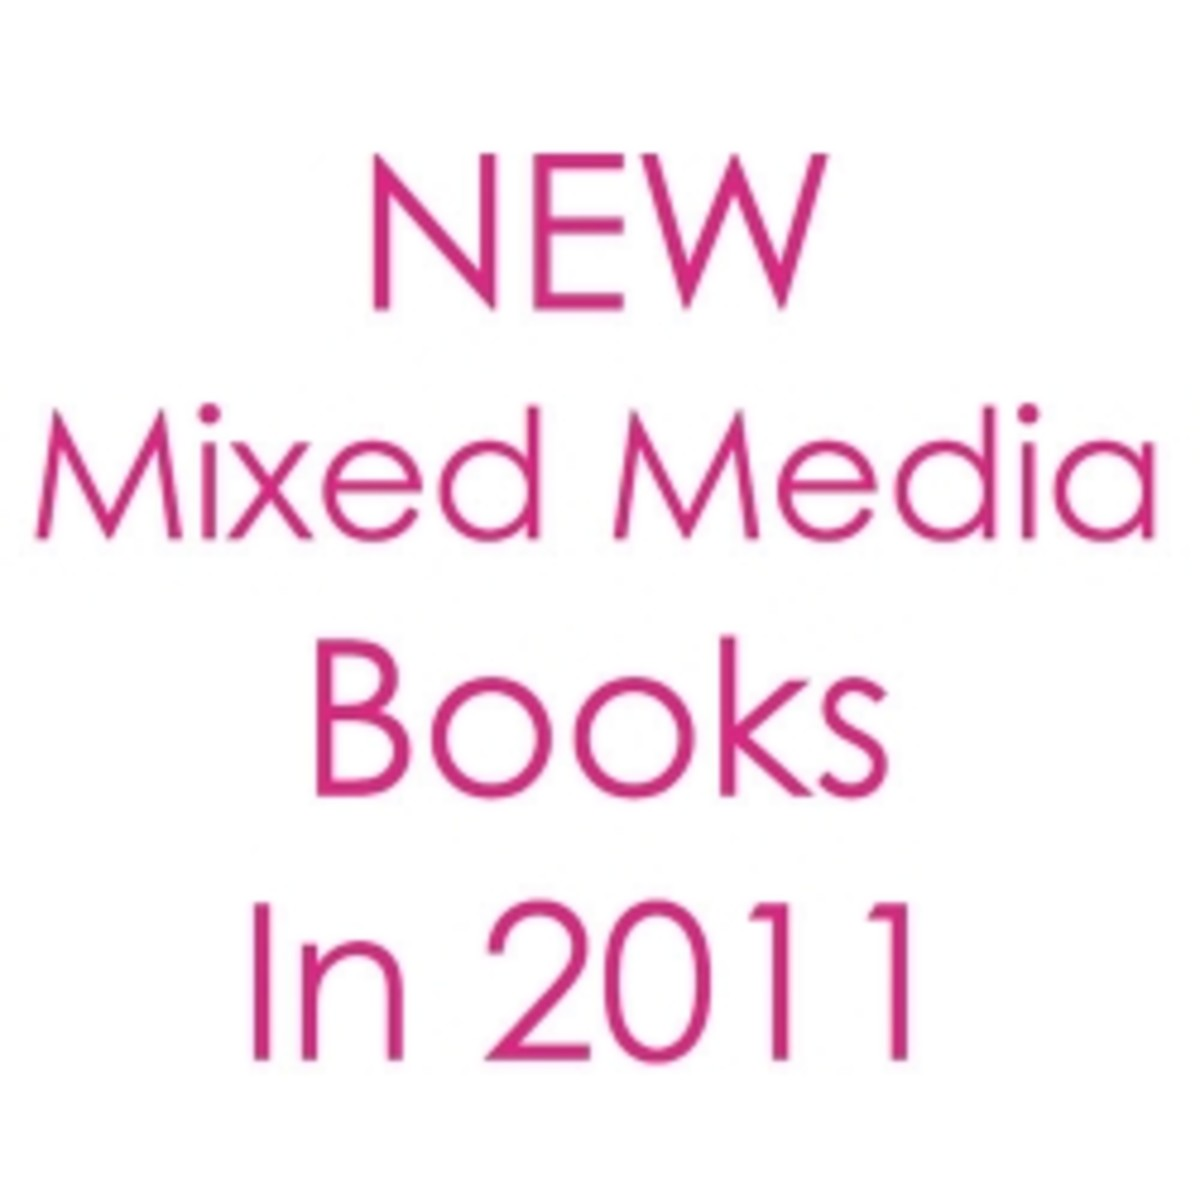 20 Best NEW Art Books about Mixed Media in 2011